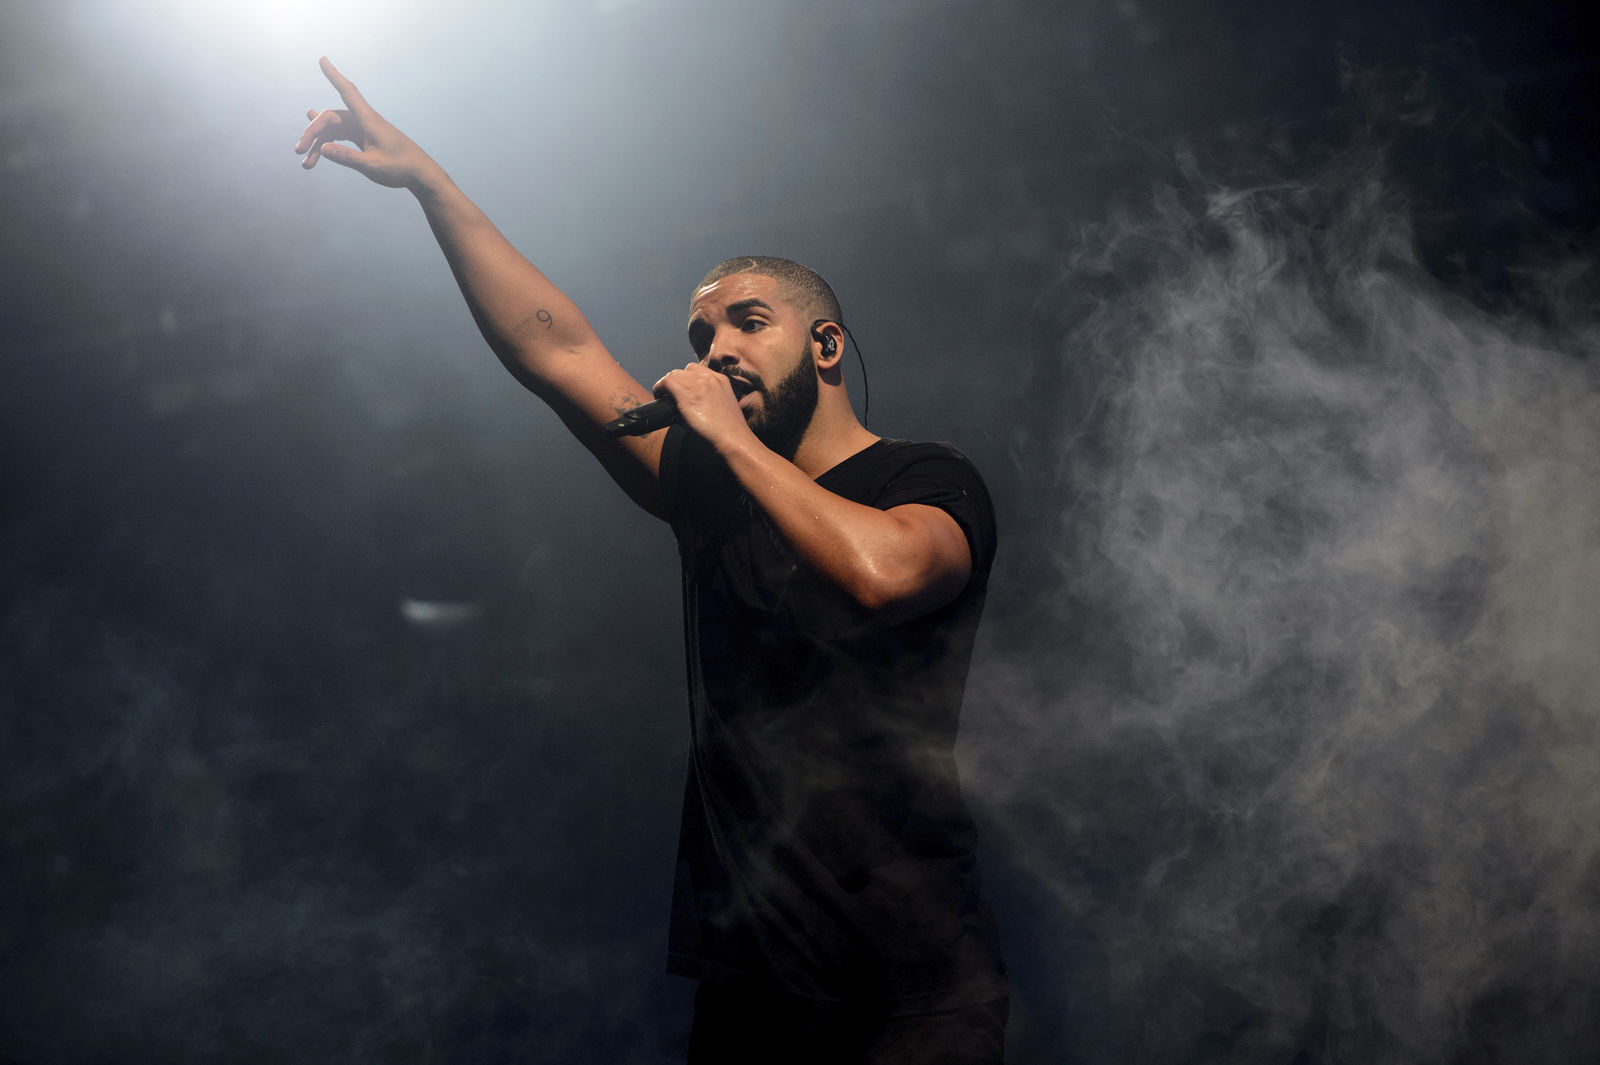 FILE - In this June 27, 2015 file photo, Canadian singer Drake performs on the main stage at Wireless festival in Finsbury Park, London. (Photo by Jonathan Short/Invision/AP, File)